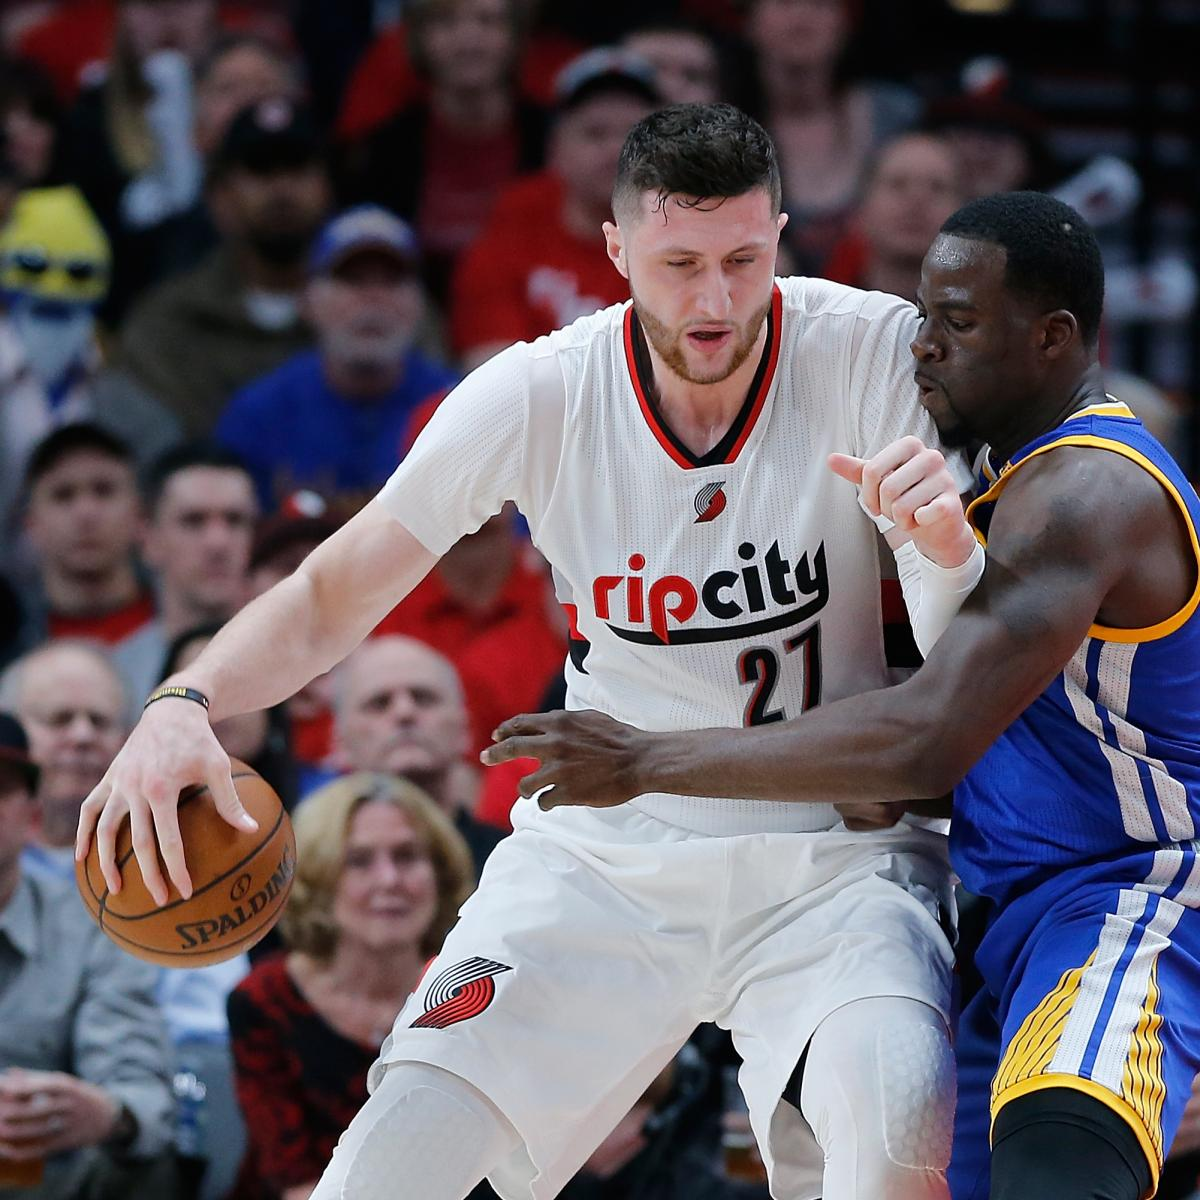 Blazers Injury Report: Jusuf Nurkic Out For Game 4 Of Warriors Vs. Blazers With